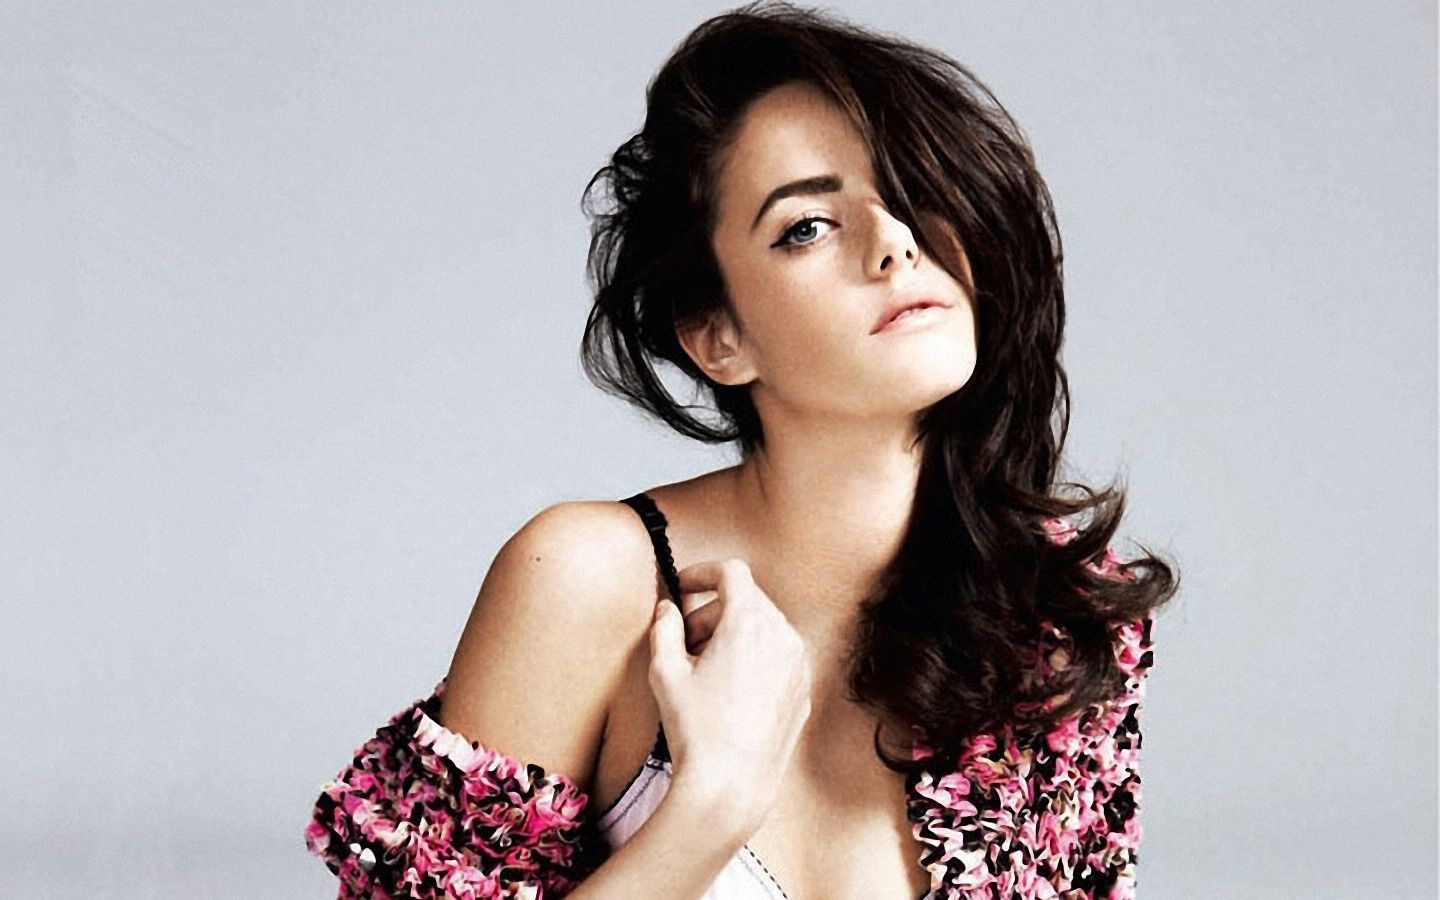 Kaya Scodelario (born 1992) Kaya Scodelario (born 1992) new photo